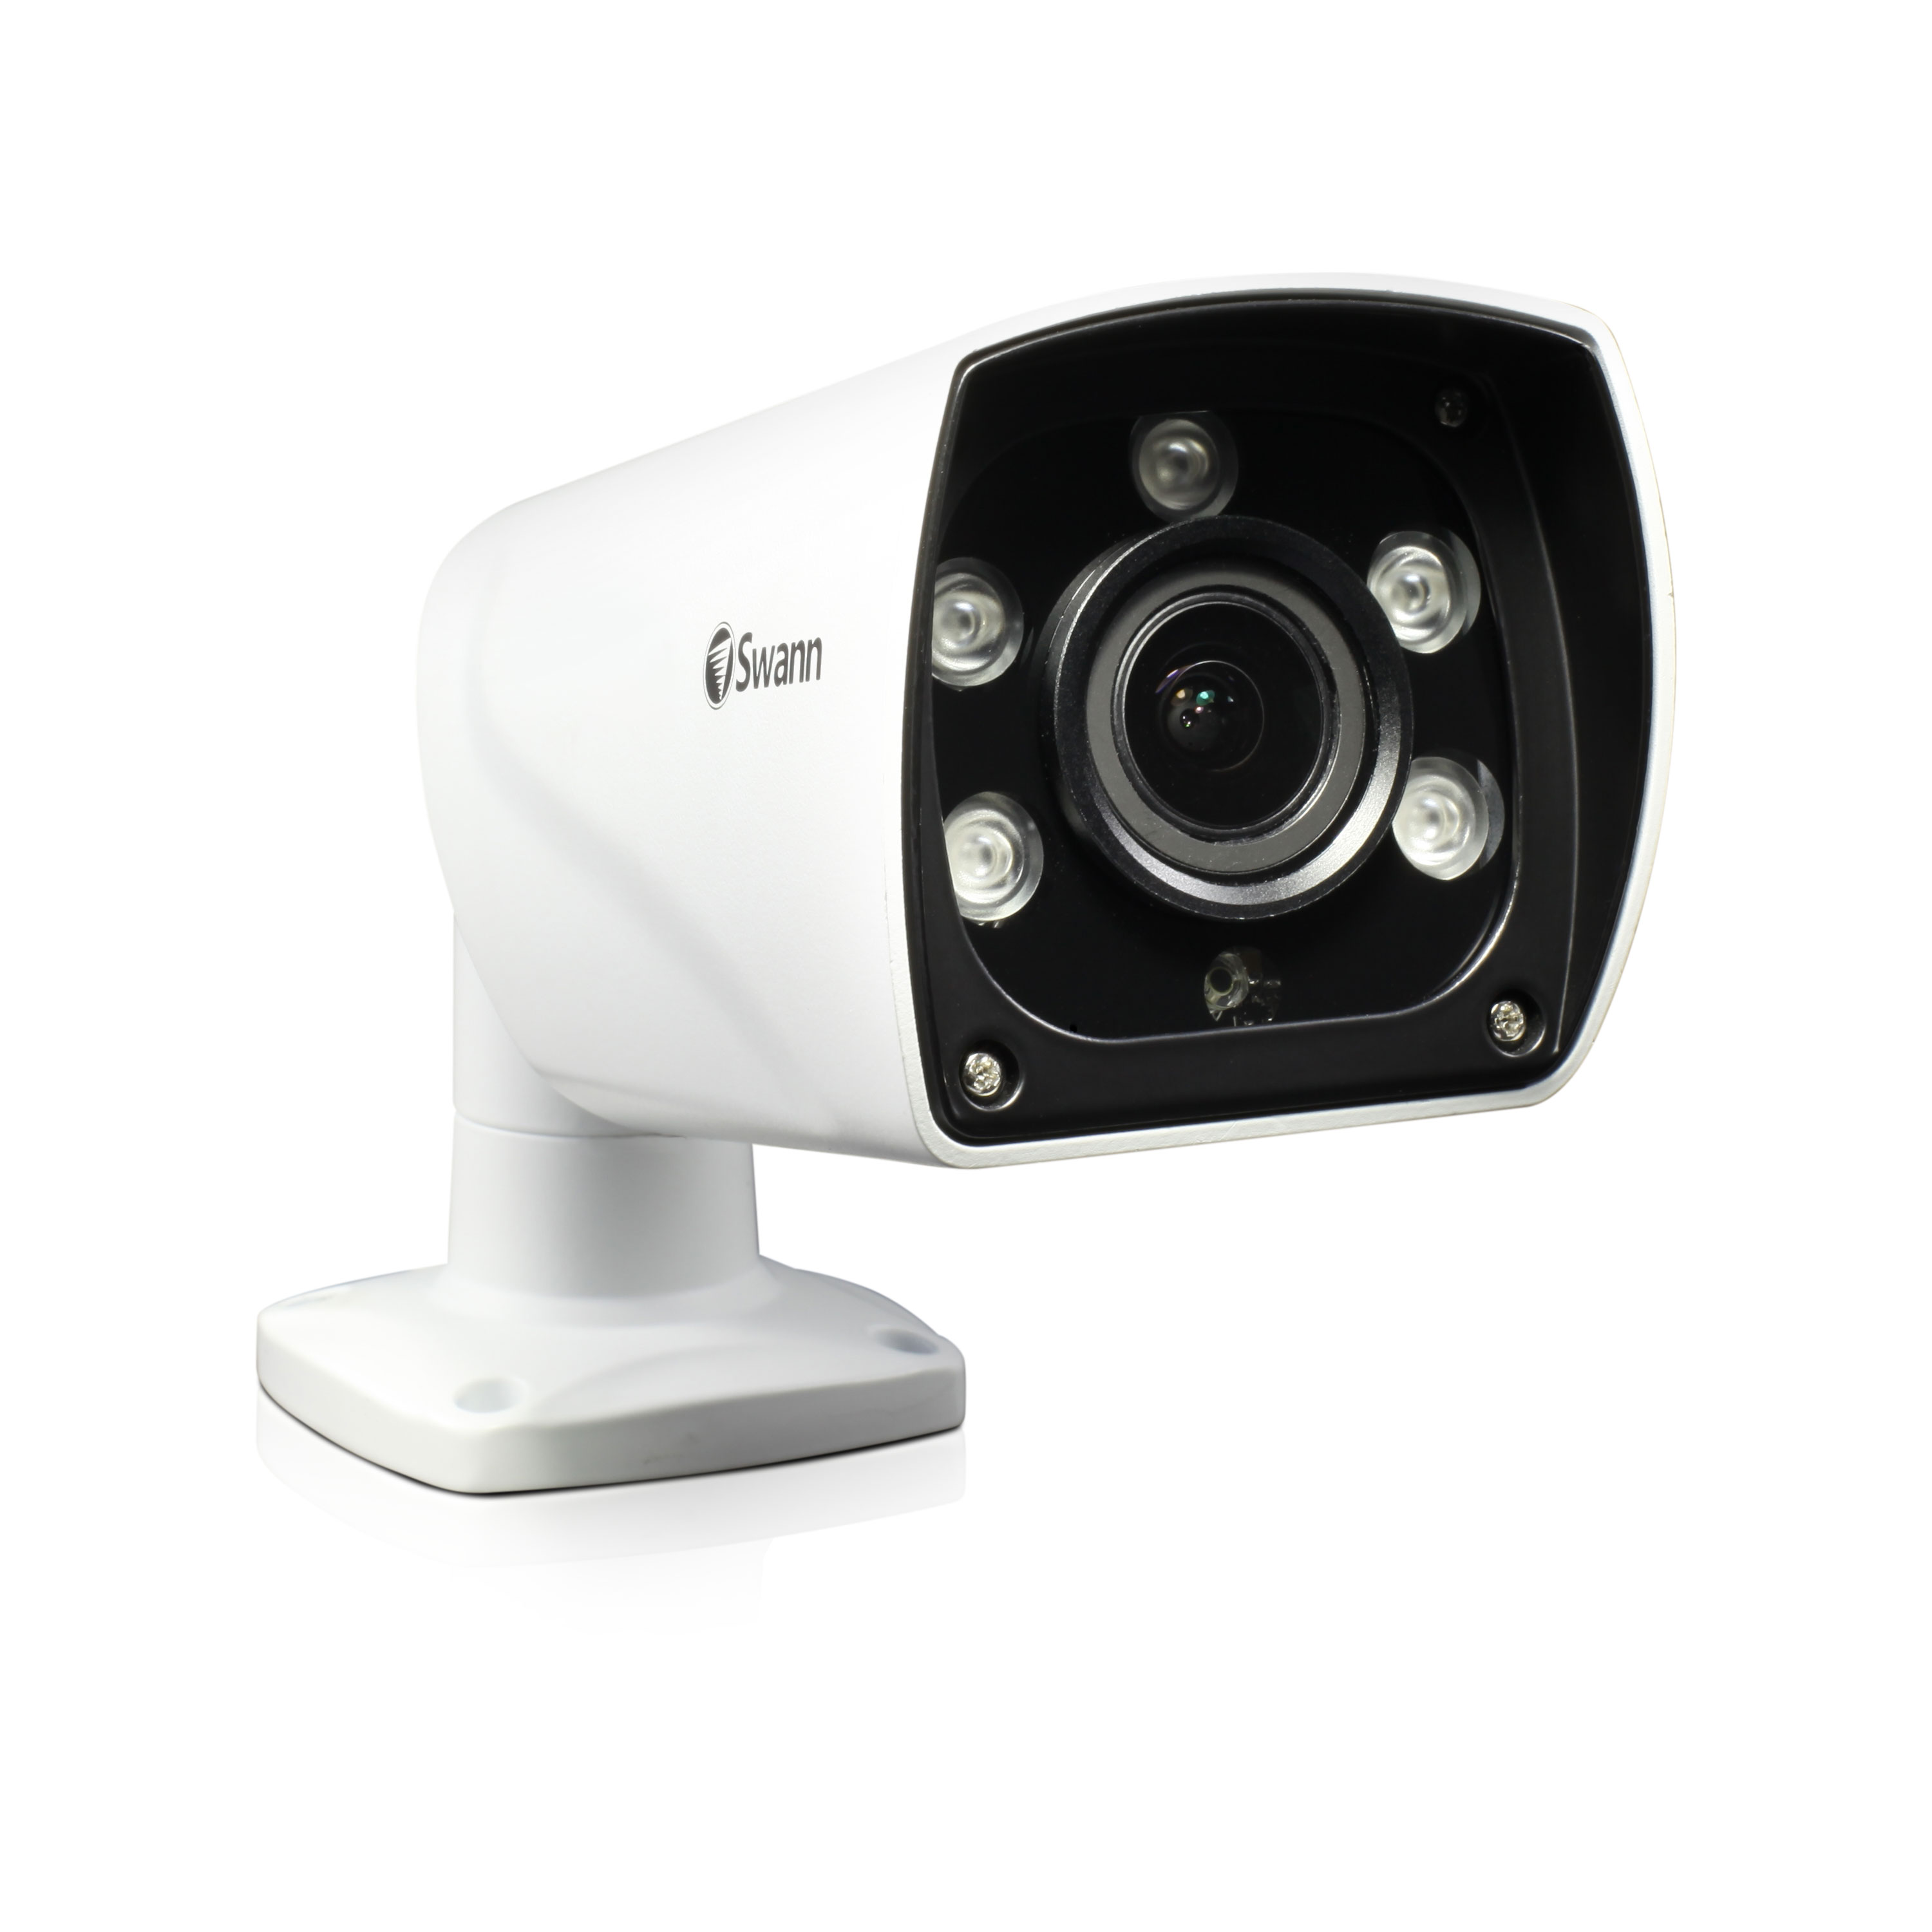 Swann Swpro 1080zlb Us 1080p Security Bullet Camera W 4x